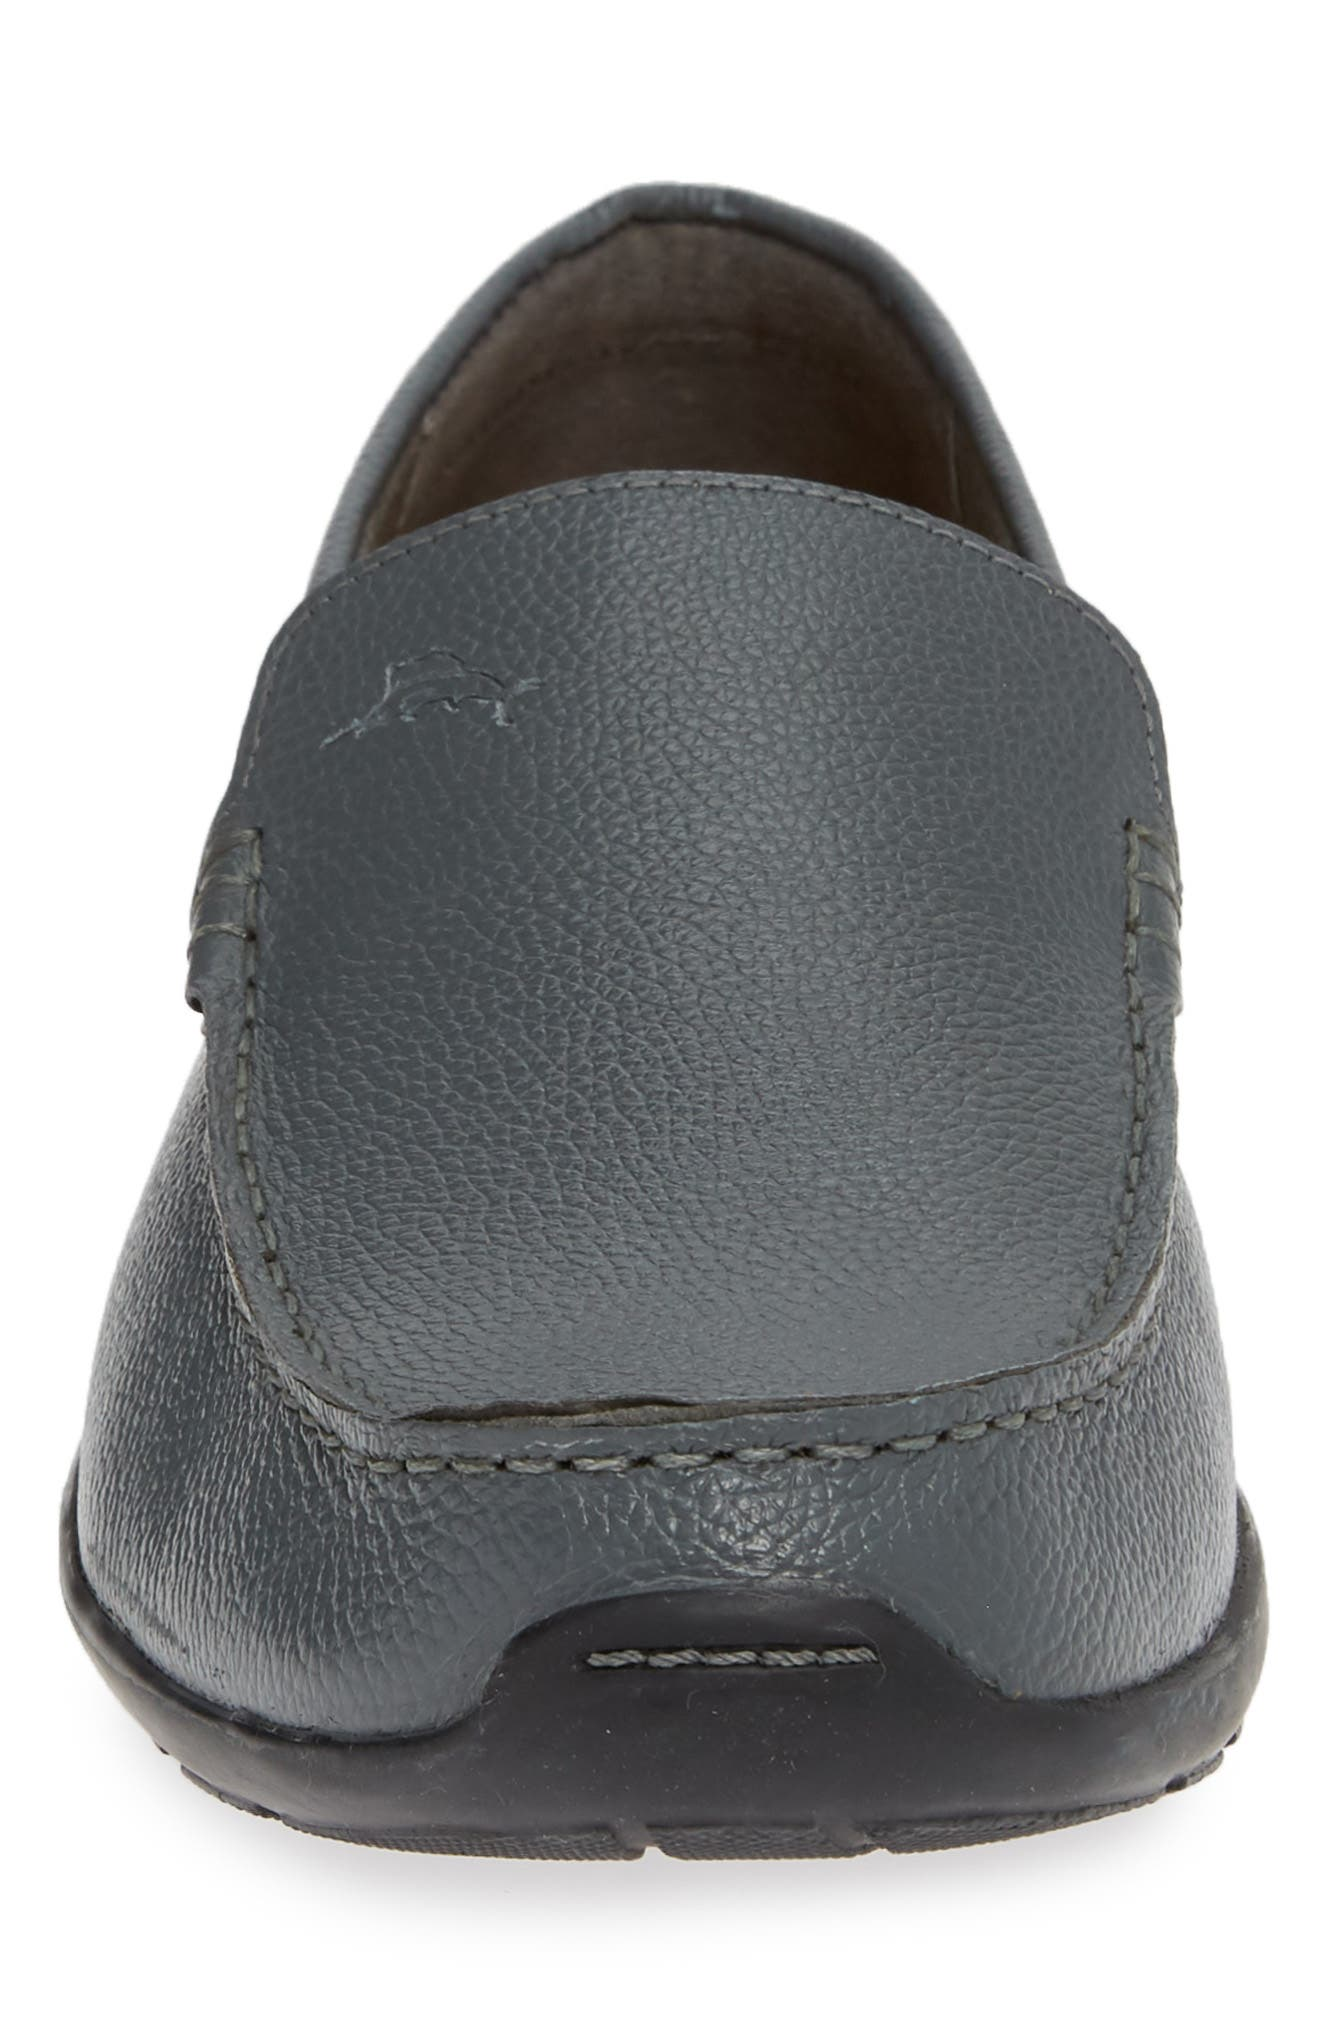 Orion Venetian Loafer,                             Alternate thumbnail 4, color,                             GREY TUMBLED LEATHER